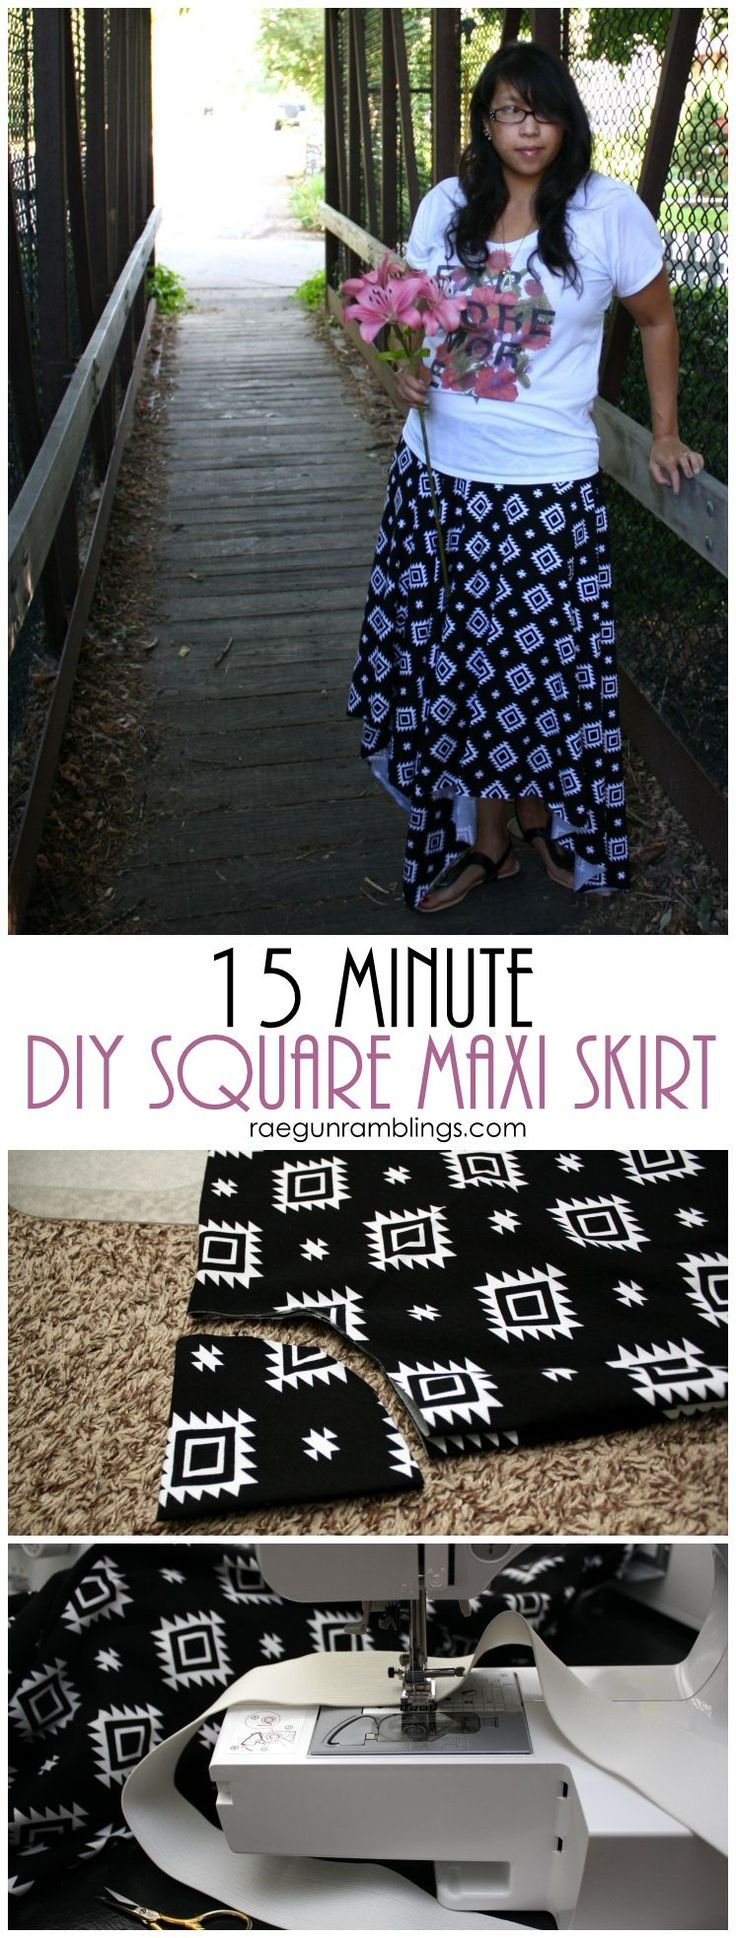 My new favorite DIY skirt tutorial so fast, easy, and cute